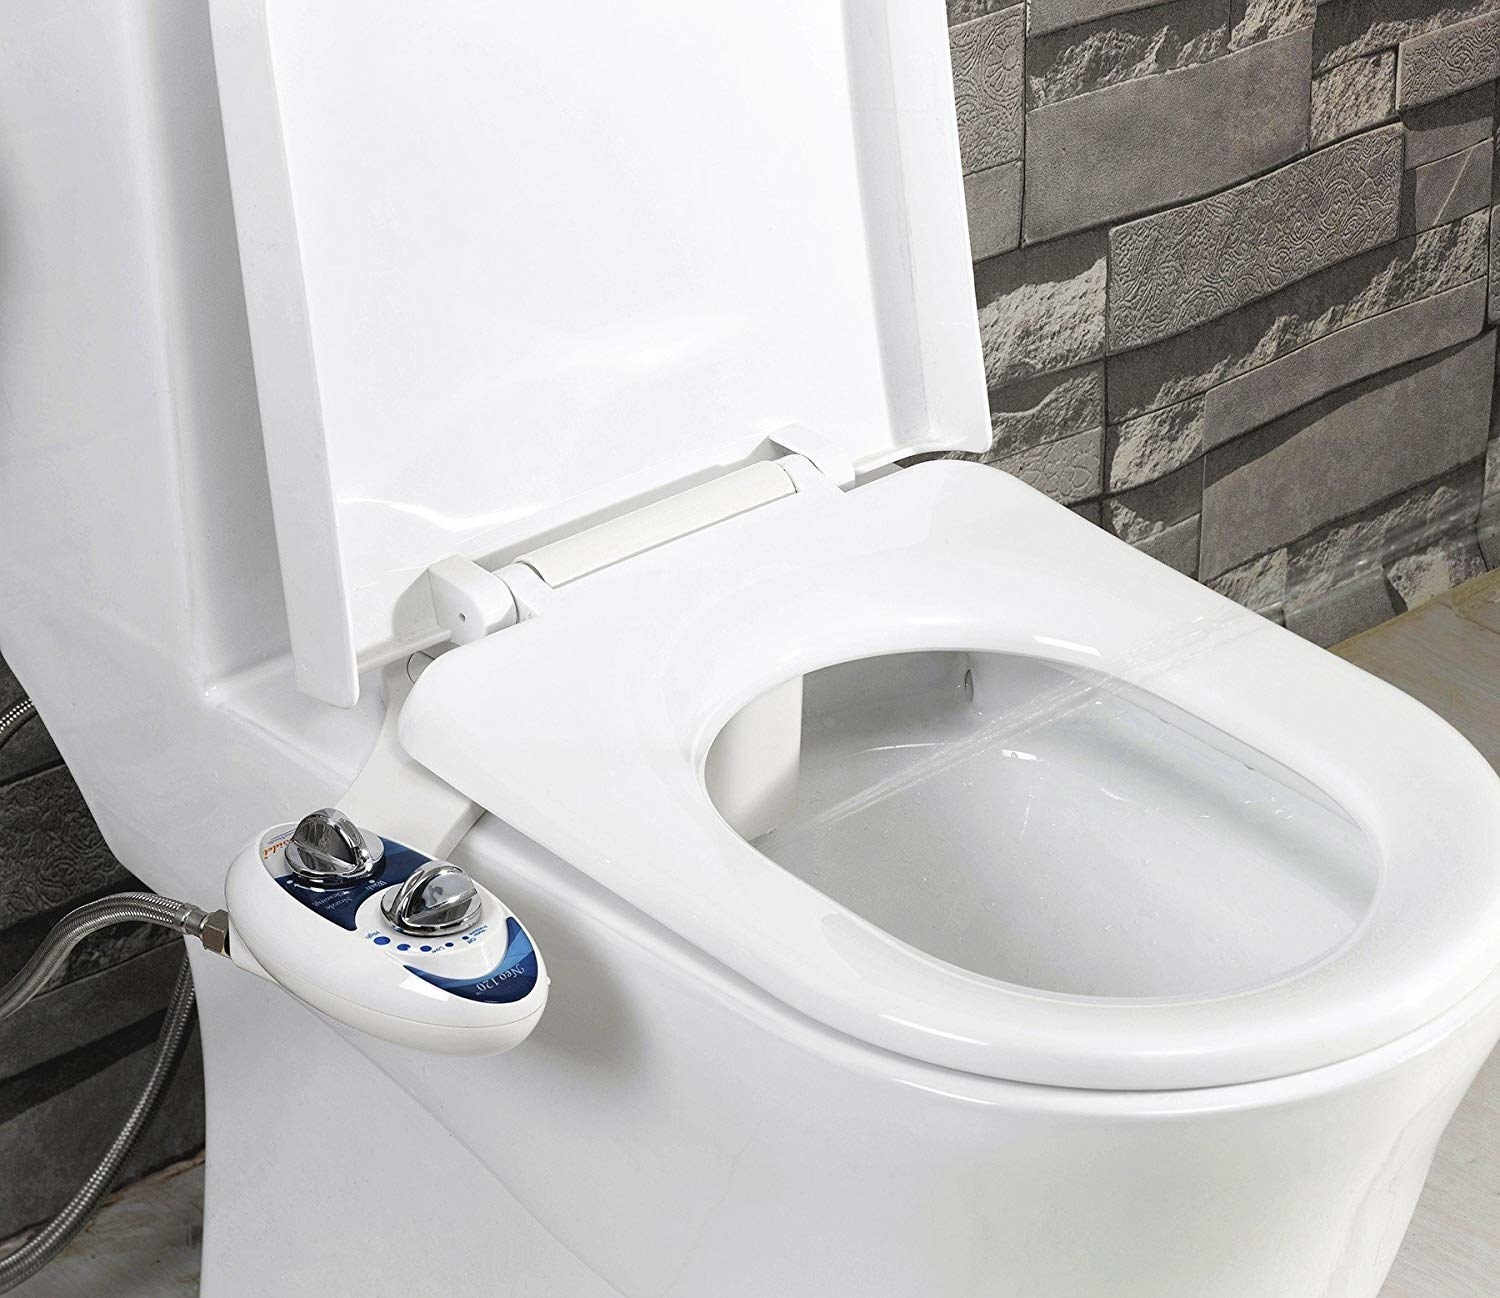 Bidet attached to toilet